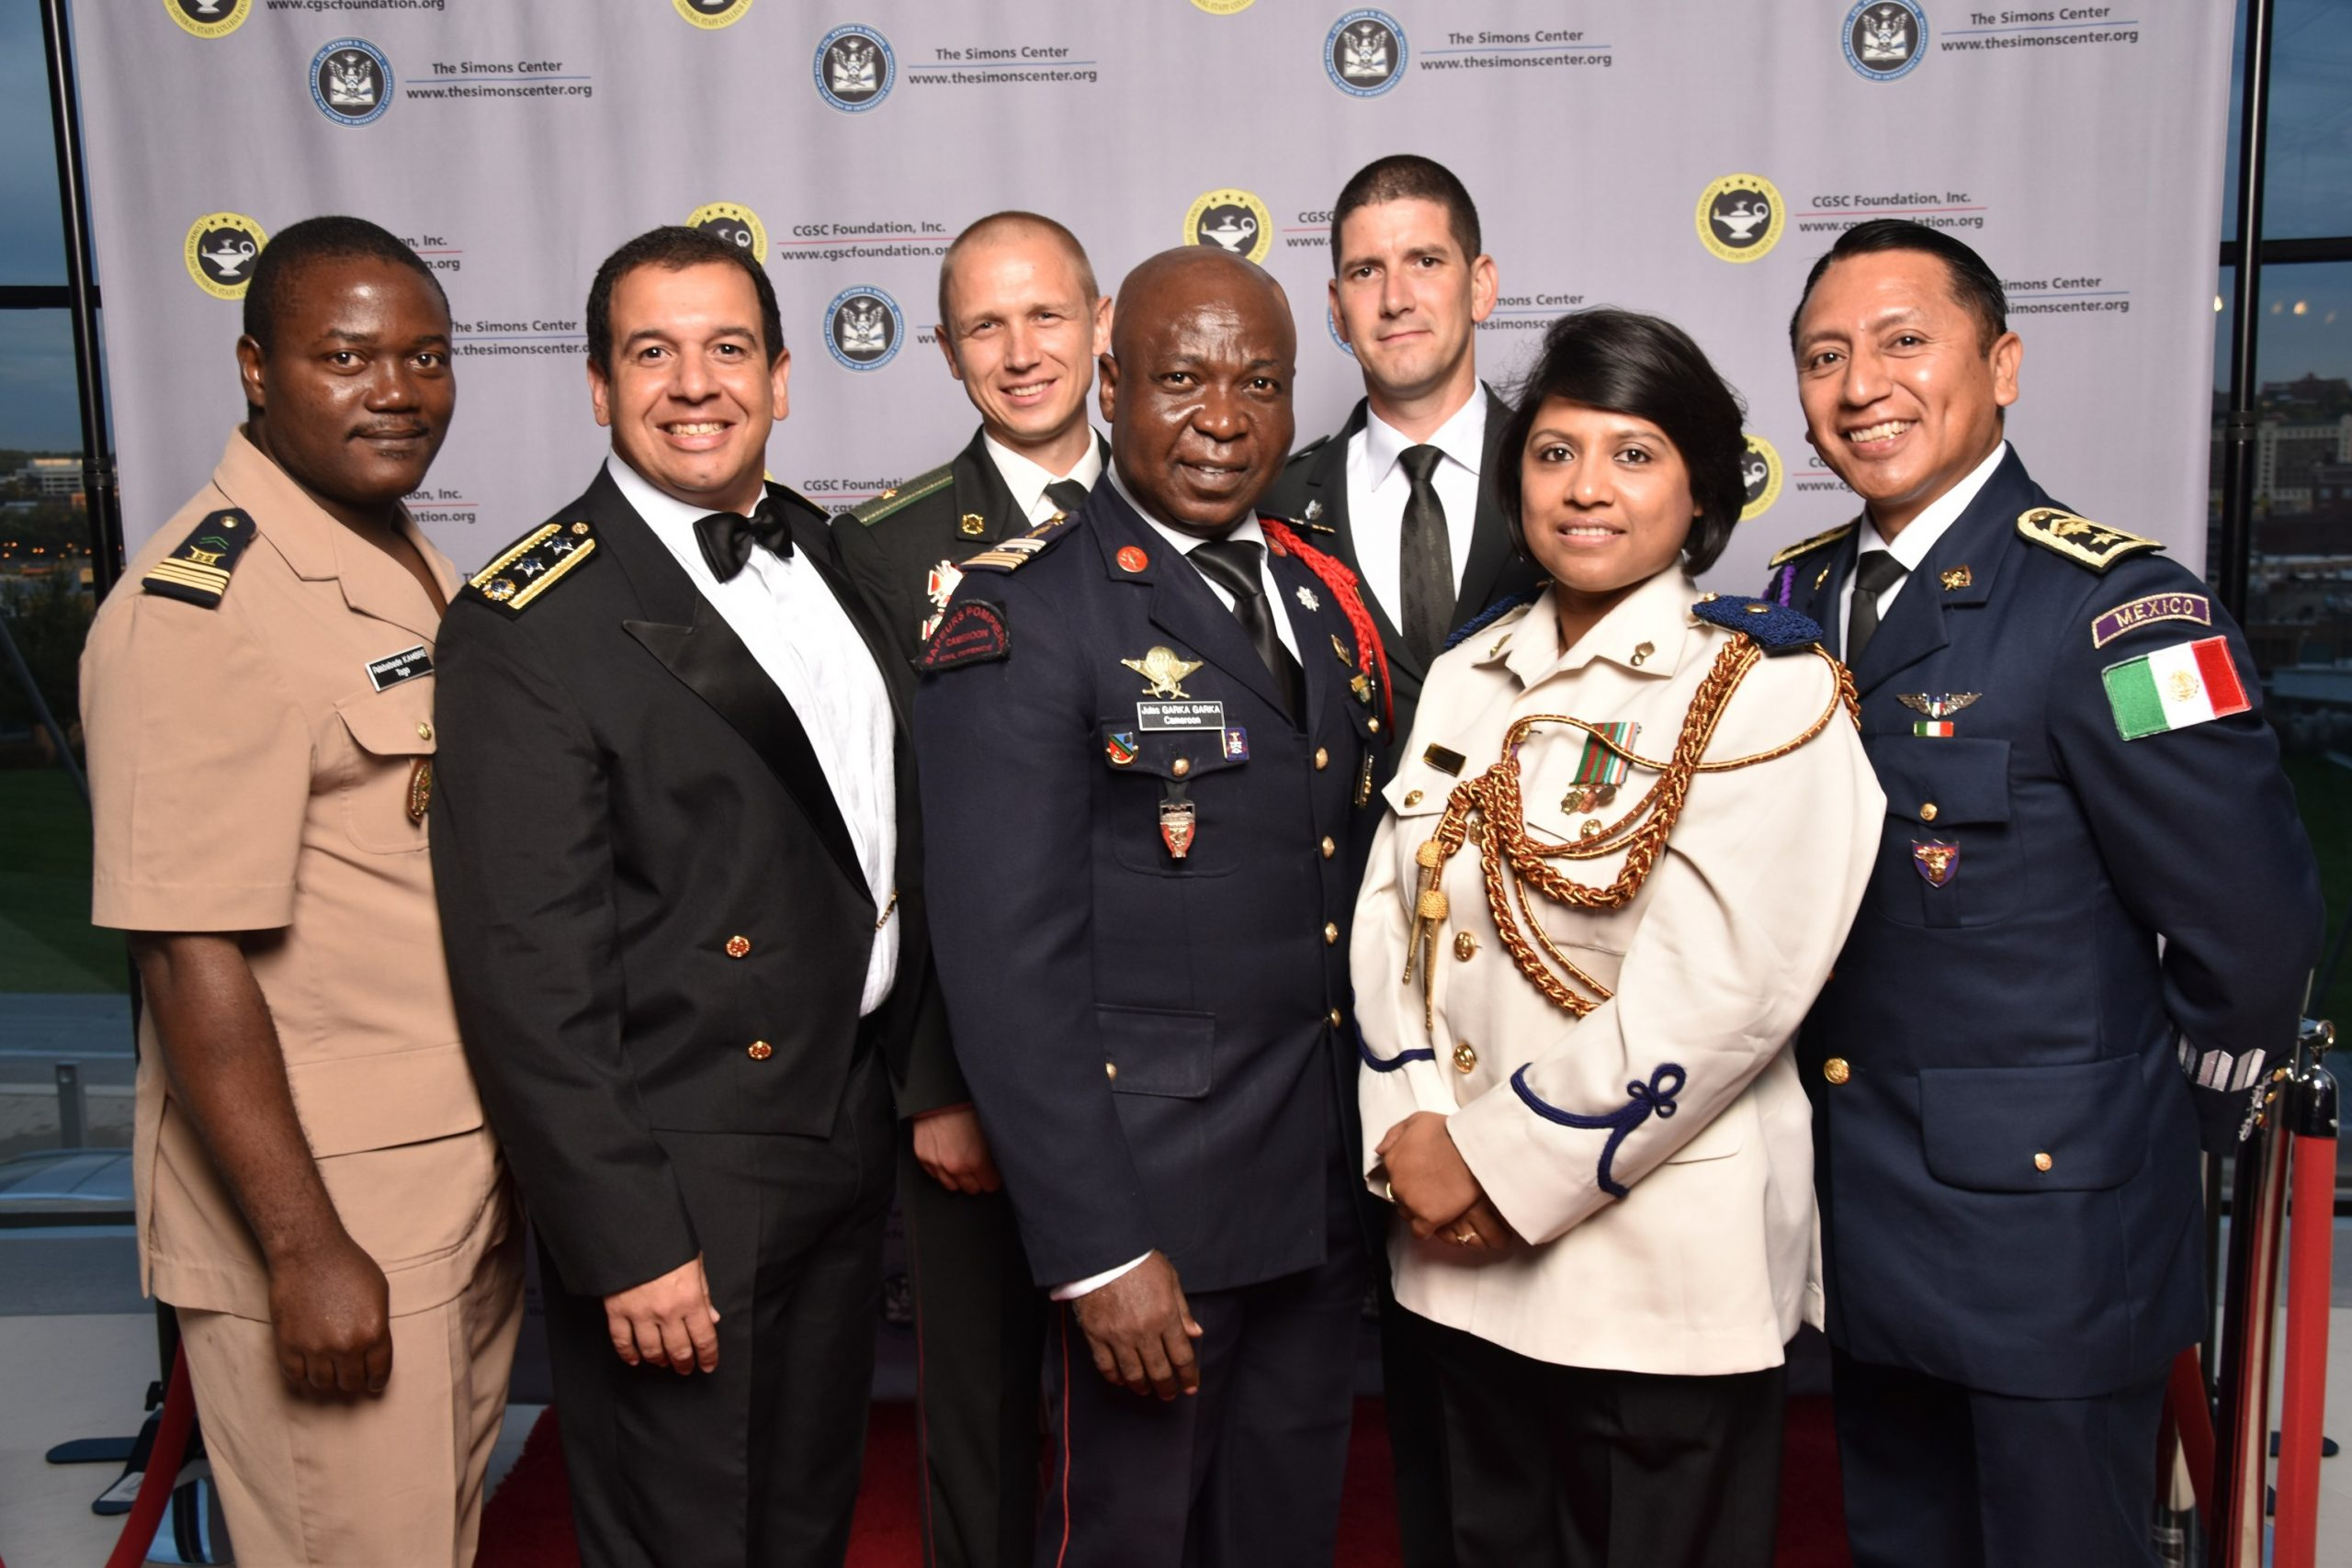 International Military Officers at the 2016 Celebration of International Friendship